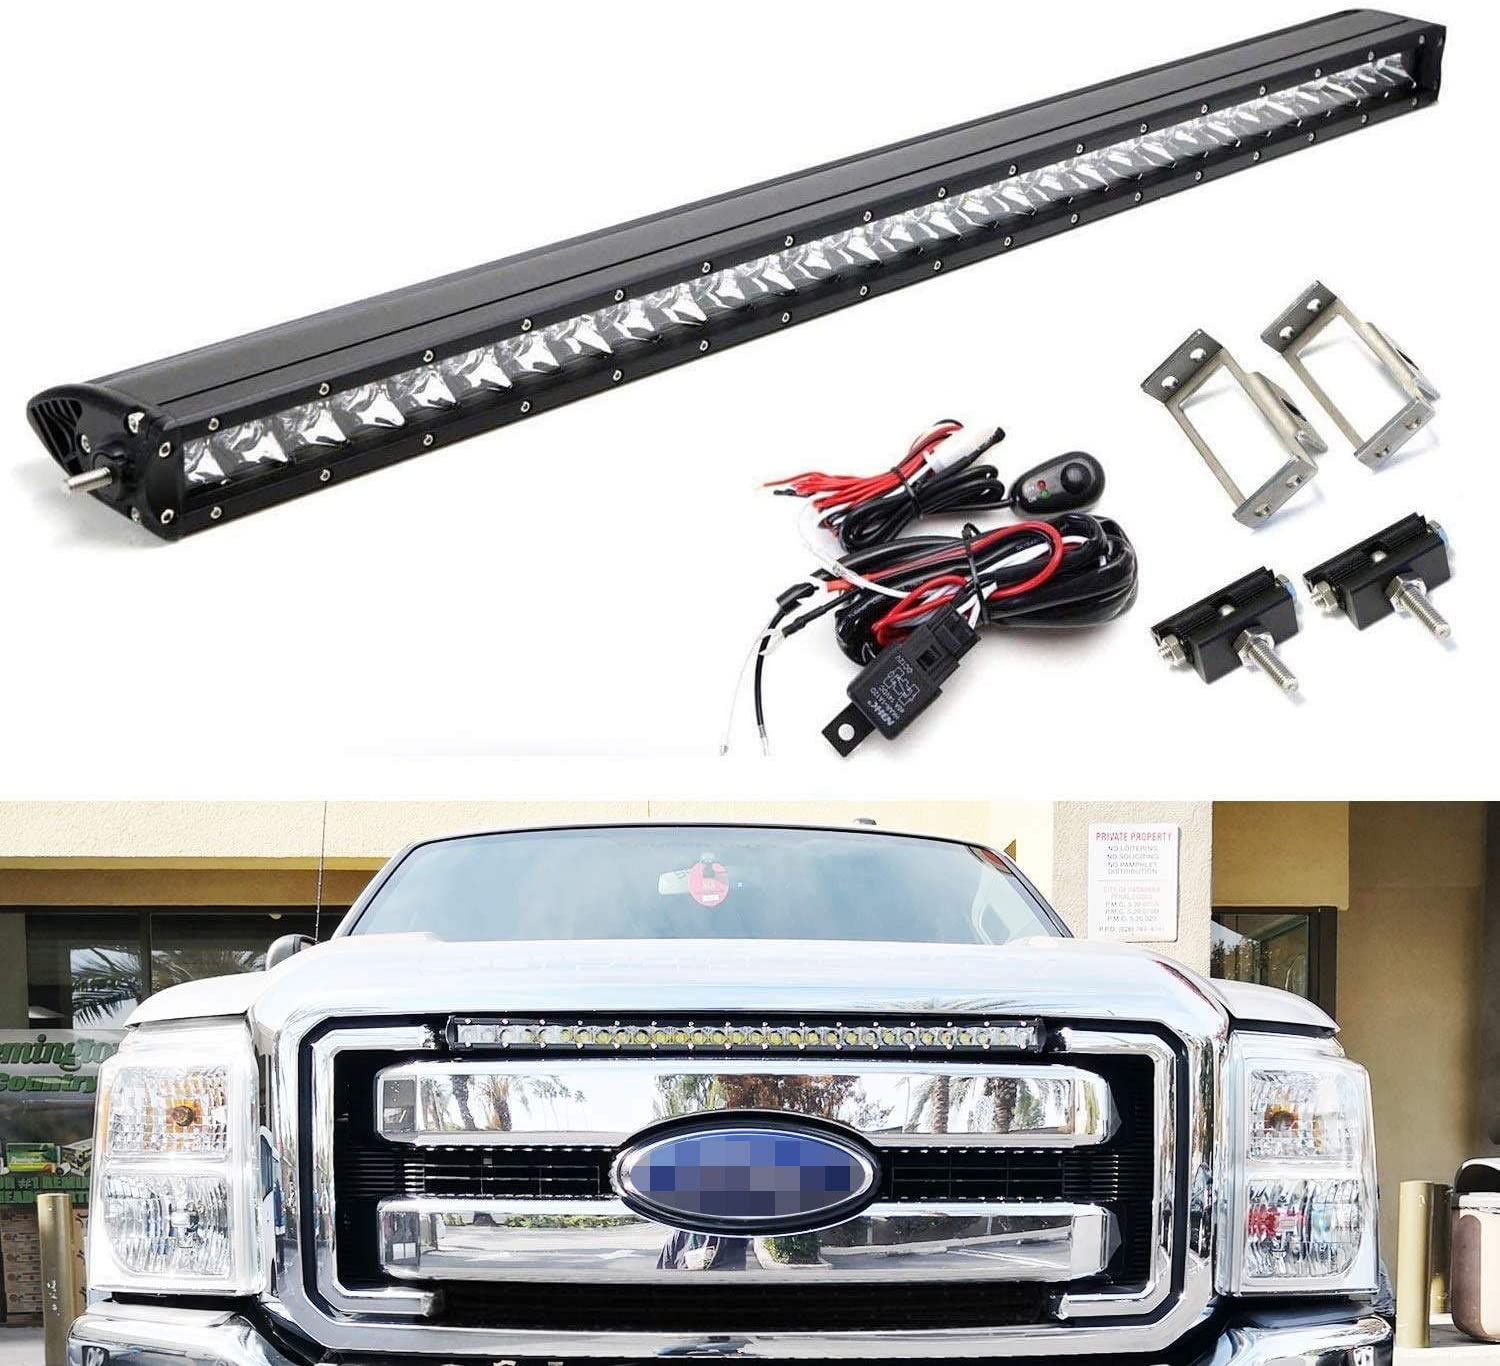 Amazon.com: iJDMTOY Upper Grille Mount 30-Inch LED Light Bar Compatible  With 2011-2016 Ford F250 F350 Super Duty, Includes (1) 150W High Power CREE LED  Lightbar, Grill Mounting Brackets & On/Off Switch Wiring:Amazon.com